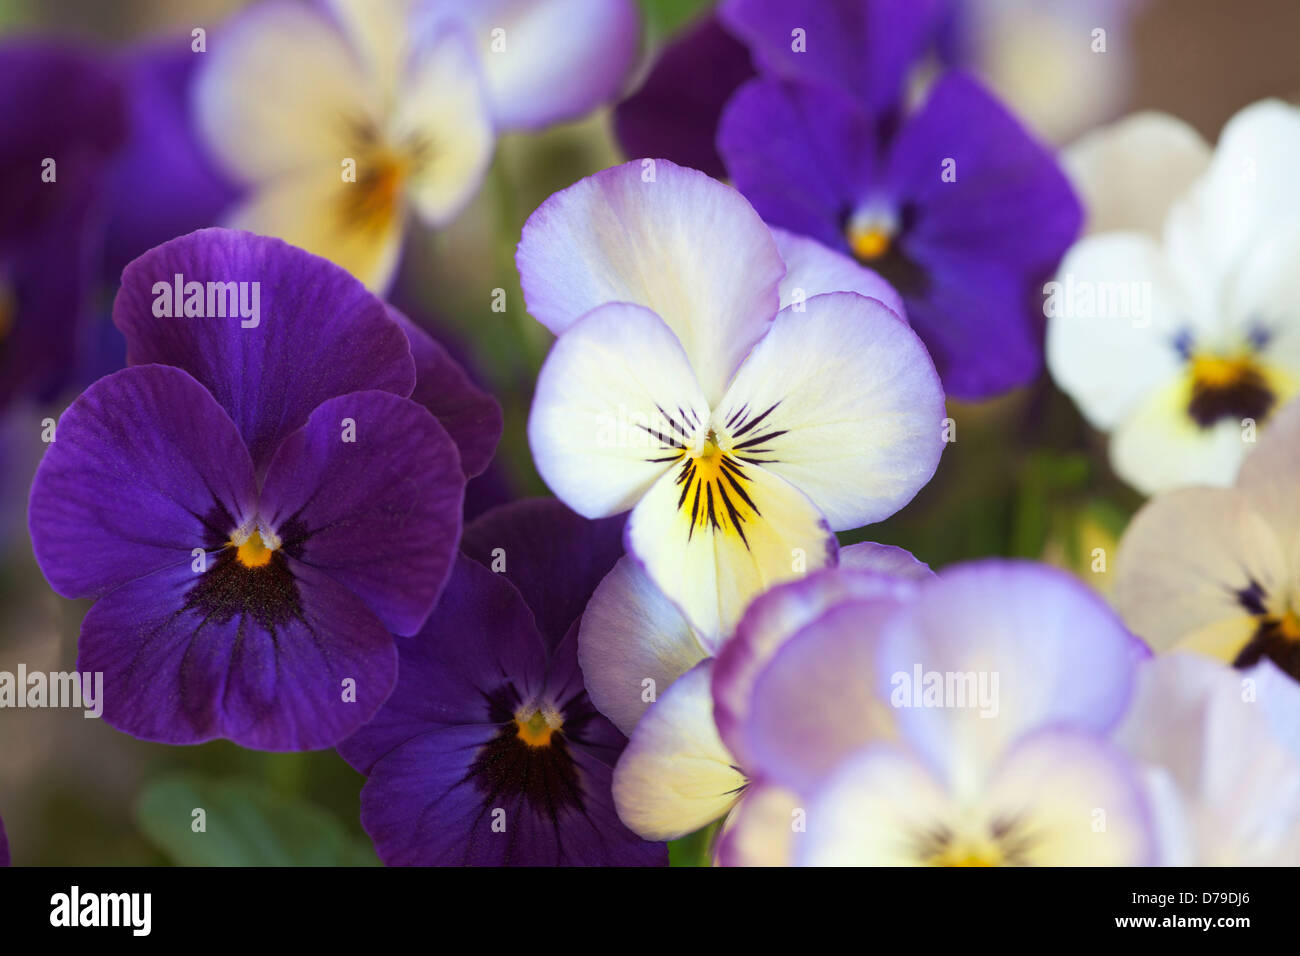 Purple And White Flowers Of The Pansy Viola Sorbet Ocean Breeze